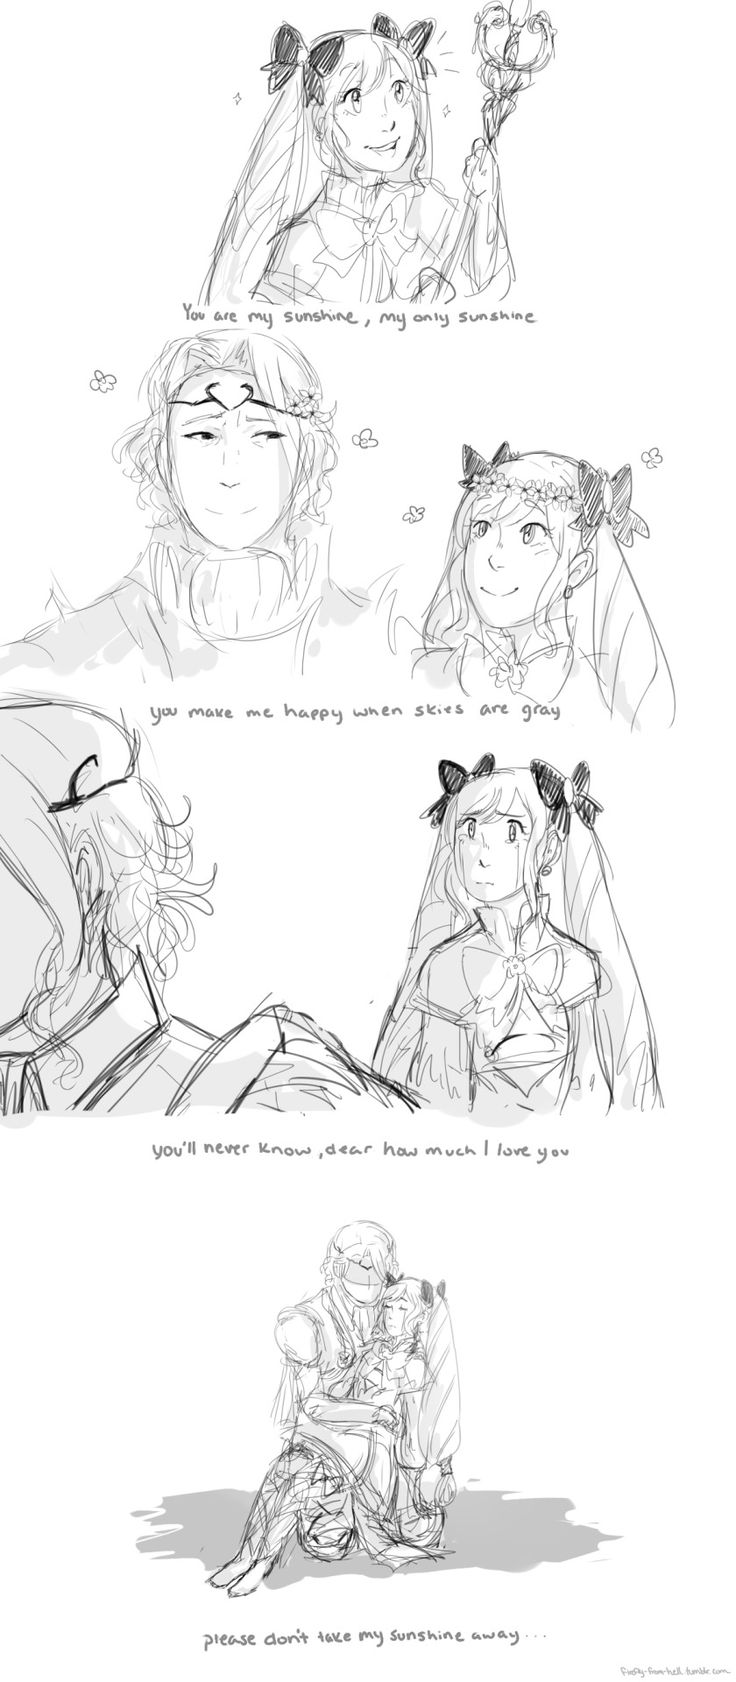 FE:Fates - Elise and Xander/Marx Lost my sunshine (this song is always so sad whyyyy)